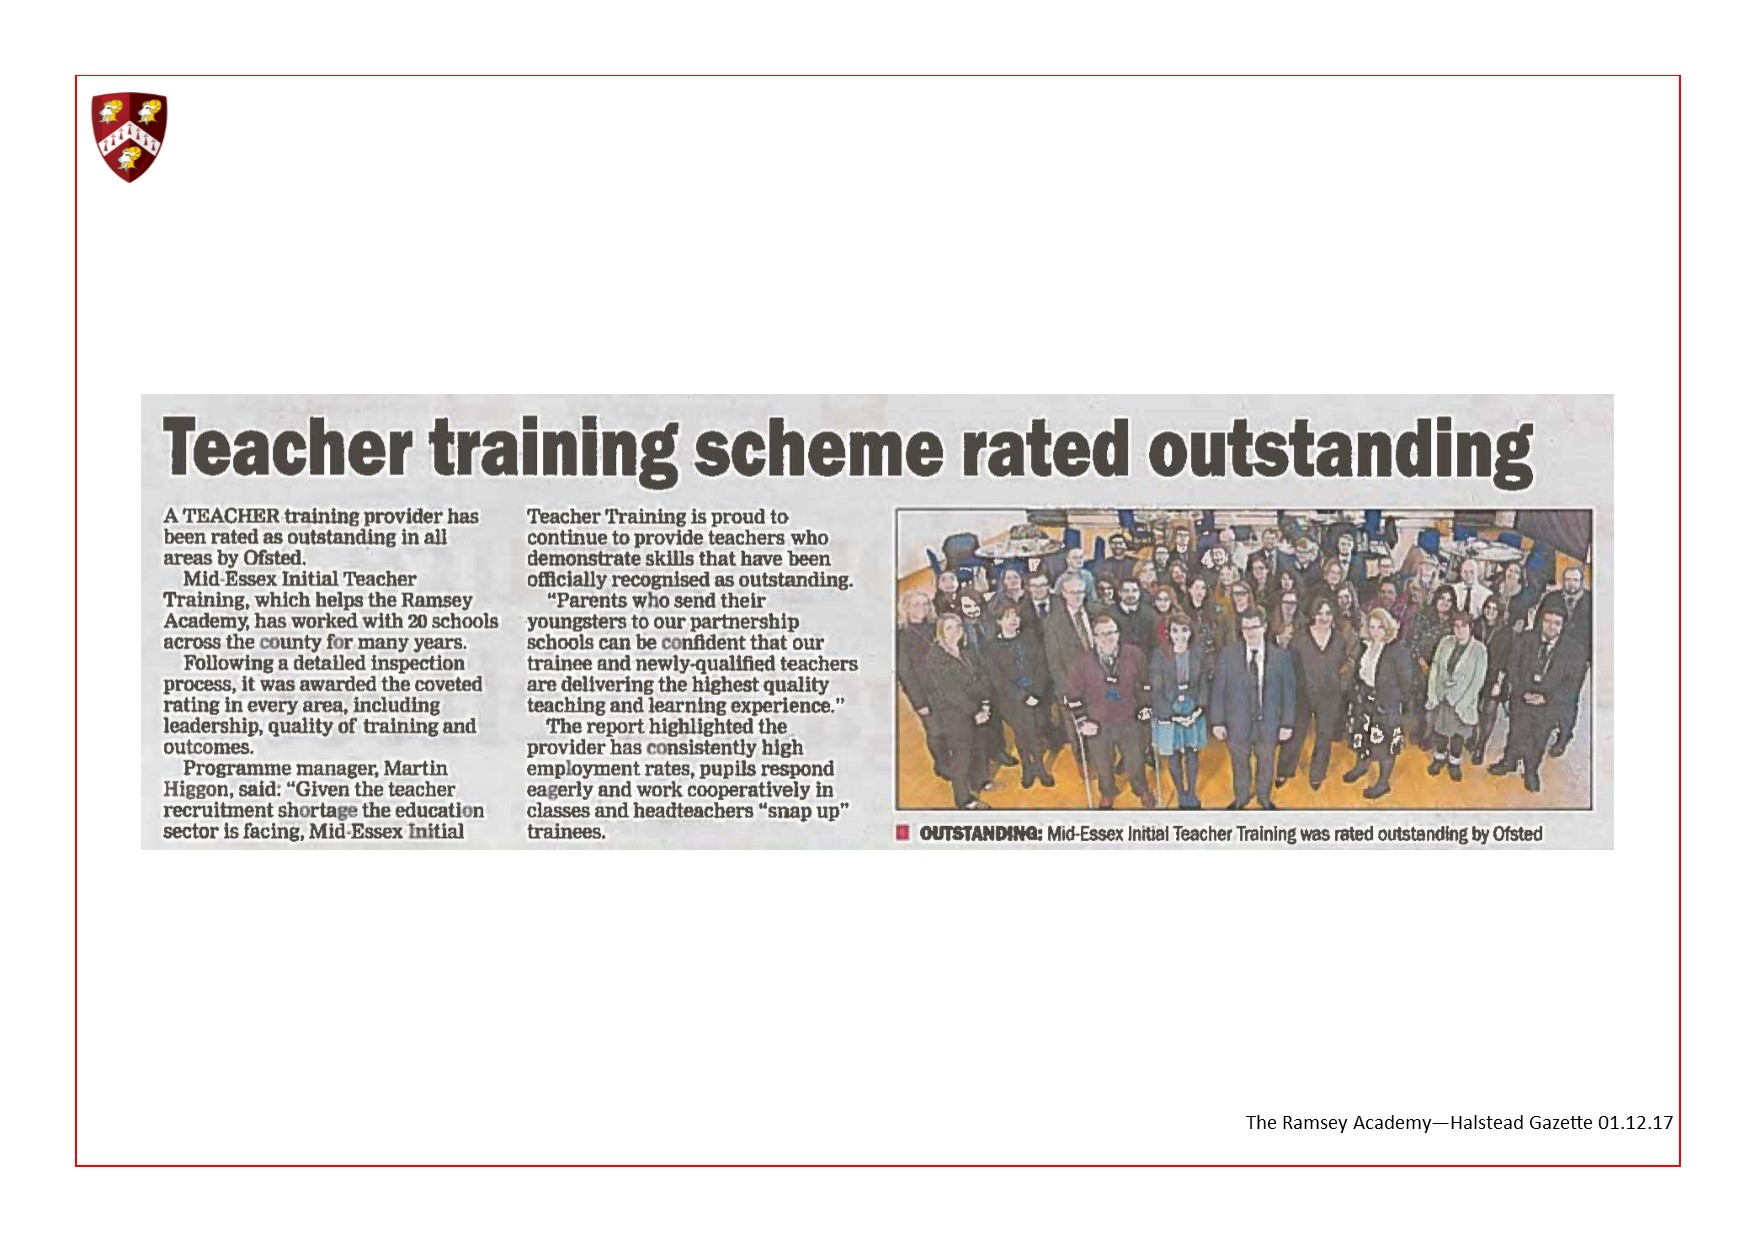 Teacher Training Scheme Rated Outstanding 01.12.17